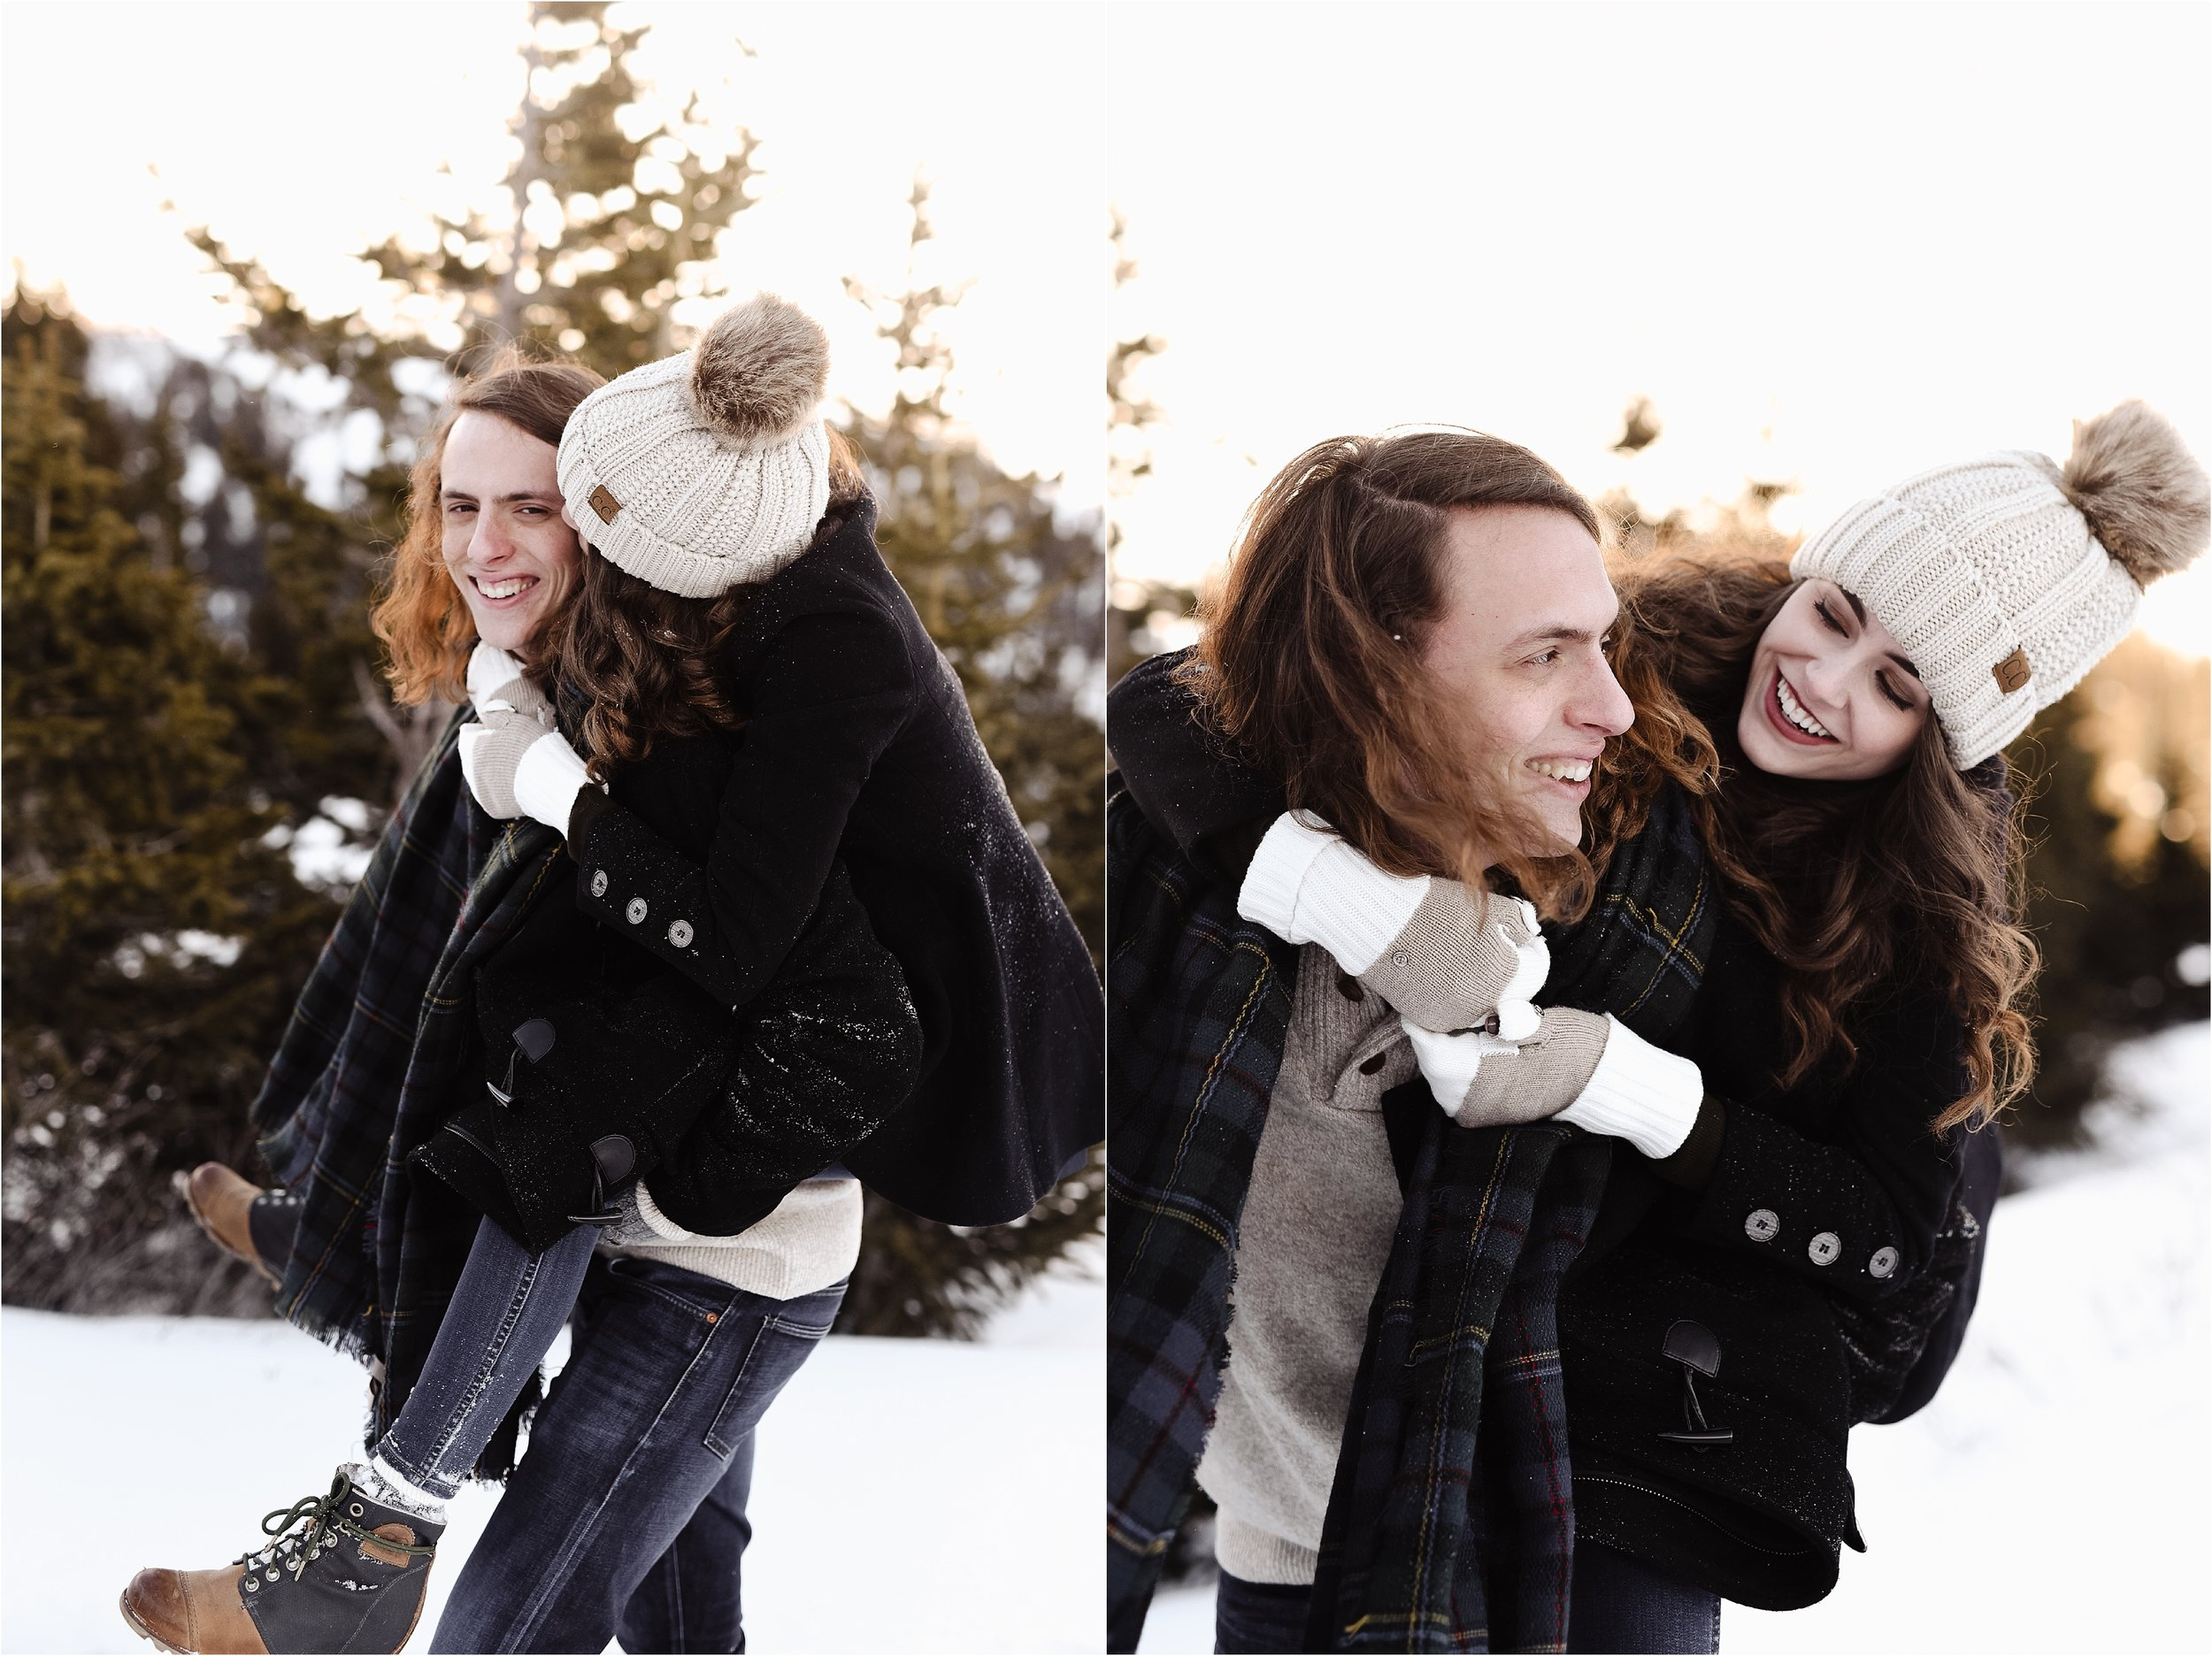 Loveland Pass, Colorado, Engagement Session Photos-12.jpg